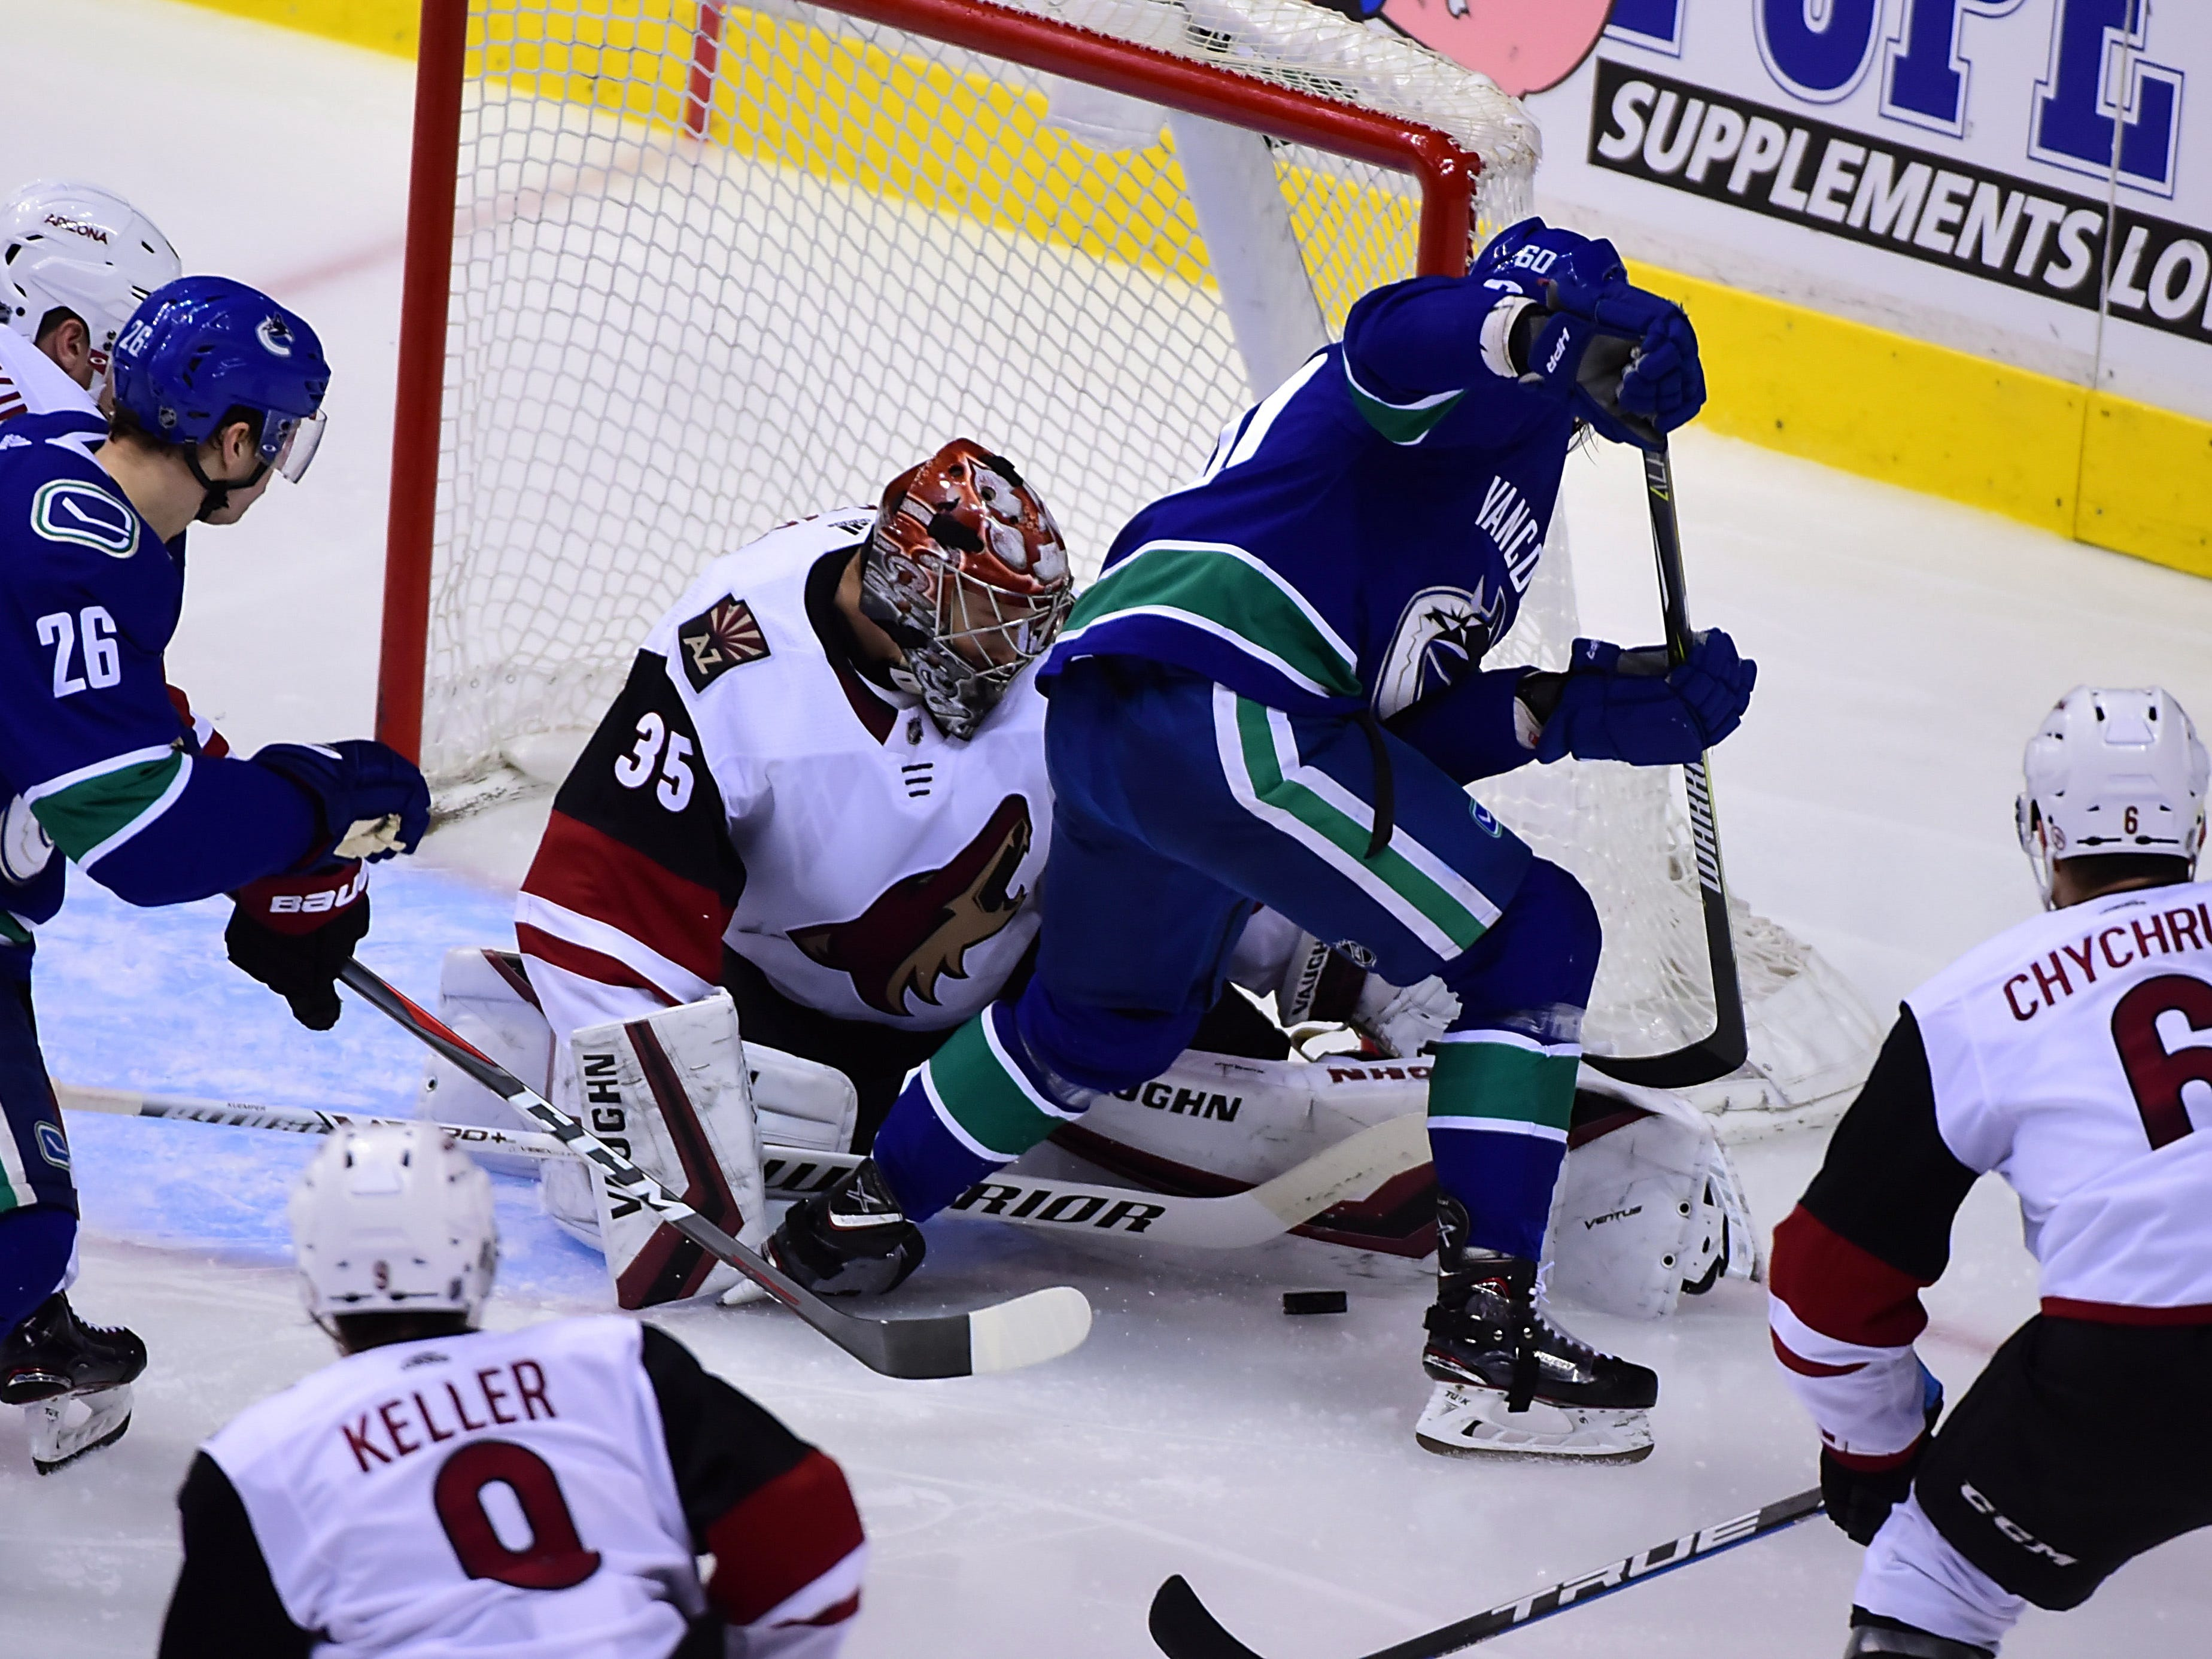 Jan 10, 2019; Vancouver, British Columbia, CAN; Arizona Coyotes goaltender Darcy Kuemper (35) blocks a shot by Vancouver Canucks forward Markus Granlund (60) during the second period at Rogers Arena. Mandatory Credit: Anne-Marie Sorvin-USA TODAY Sports